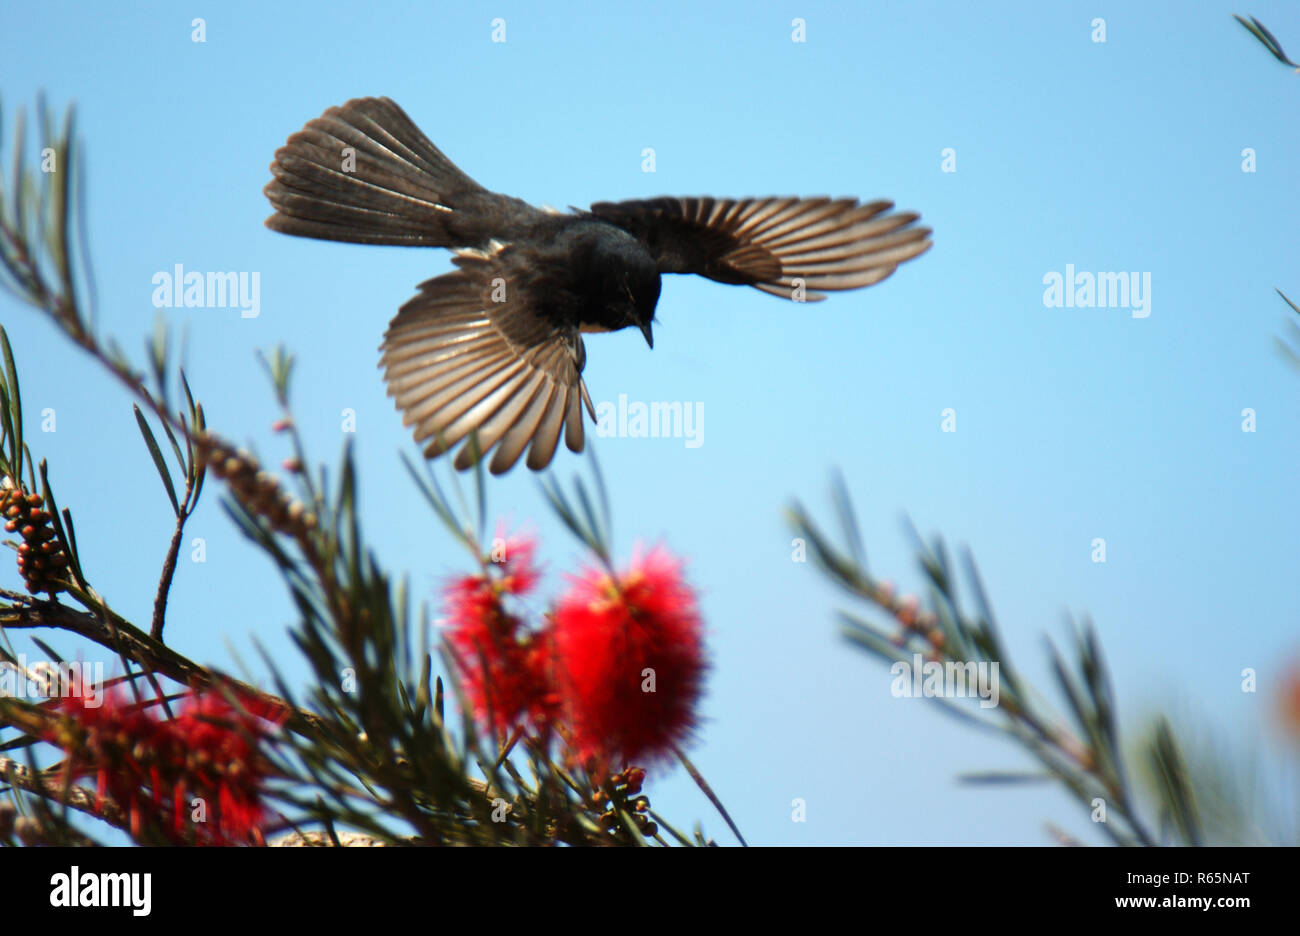 Willy Wagtail (Rhipidura leucophrys) seen here in flight is a passerine bird native to Australia. Western Australia. - Stock Image